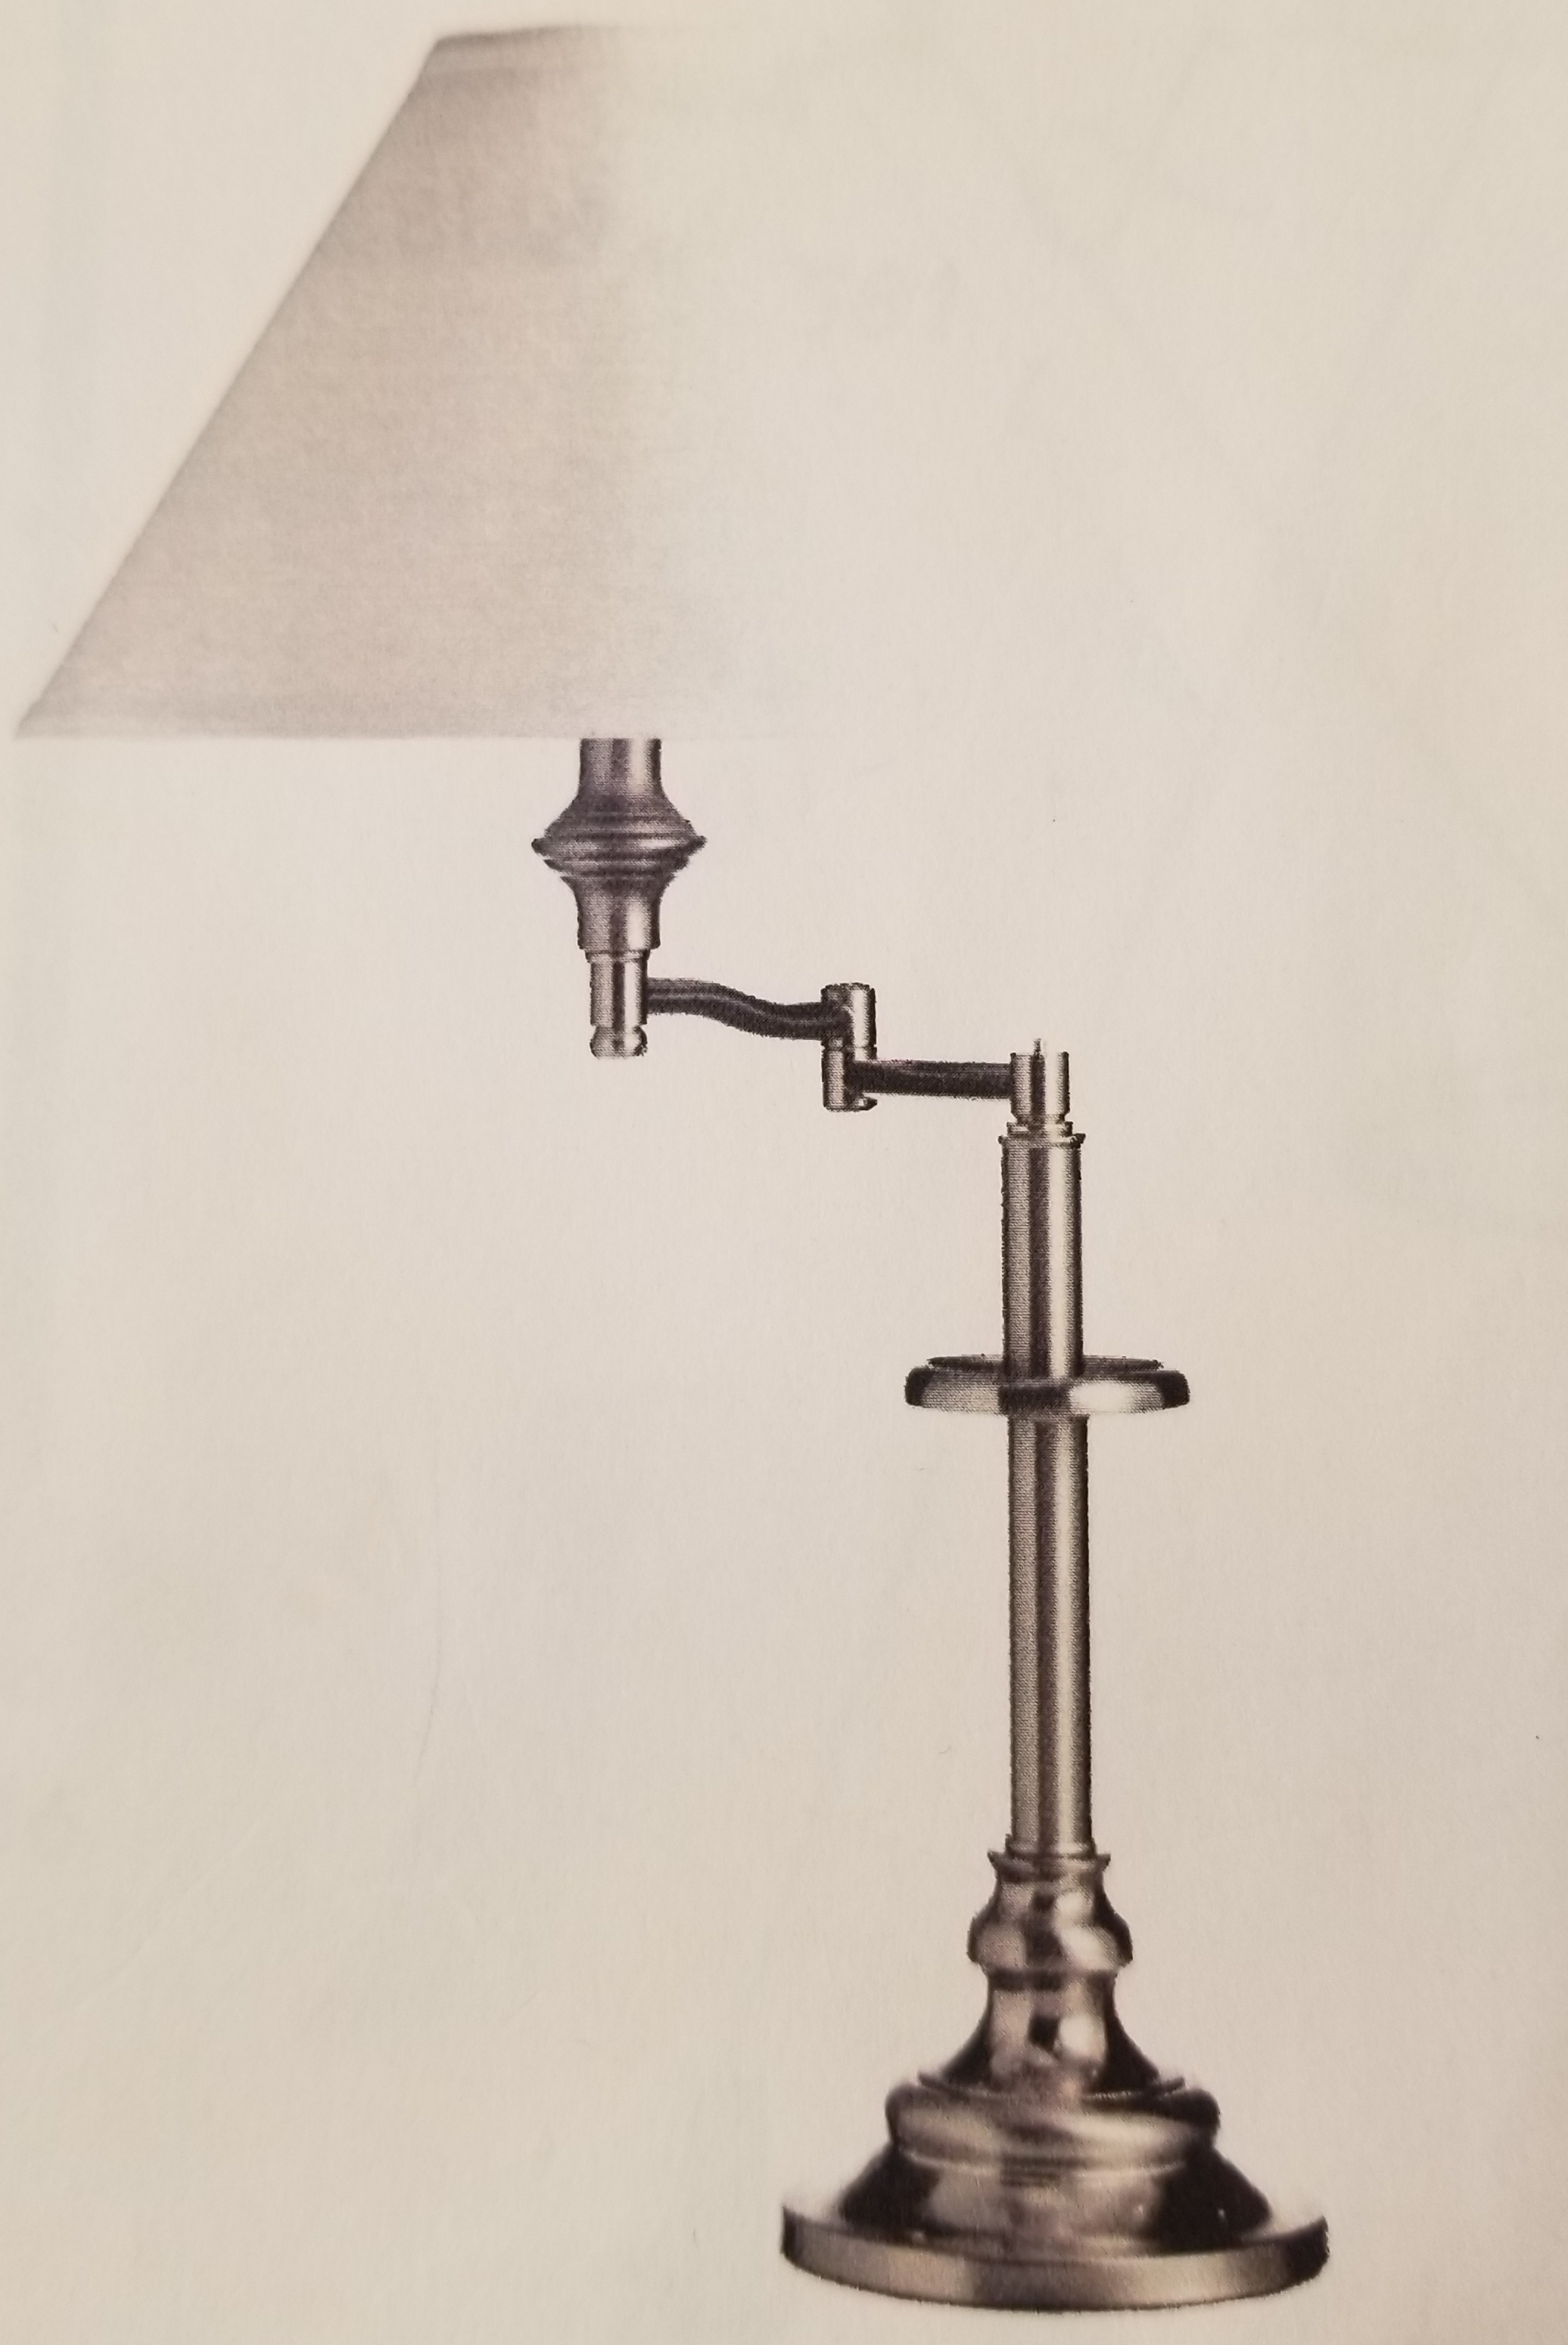 981 Swing Arm Table Lamp Made in Canada Available in Antique Brass,  Brushed Chrome, Black or Antique Bronze Regular Price $177.99 Sale Price $124.99